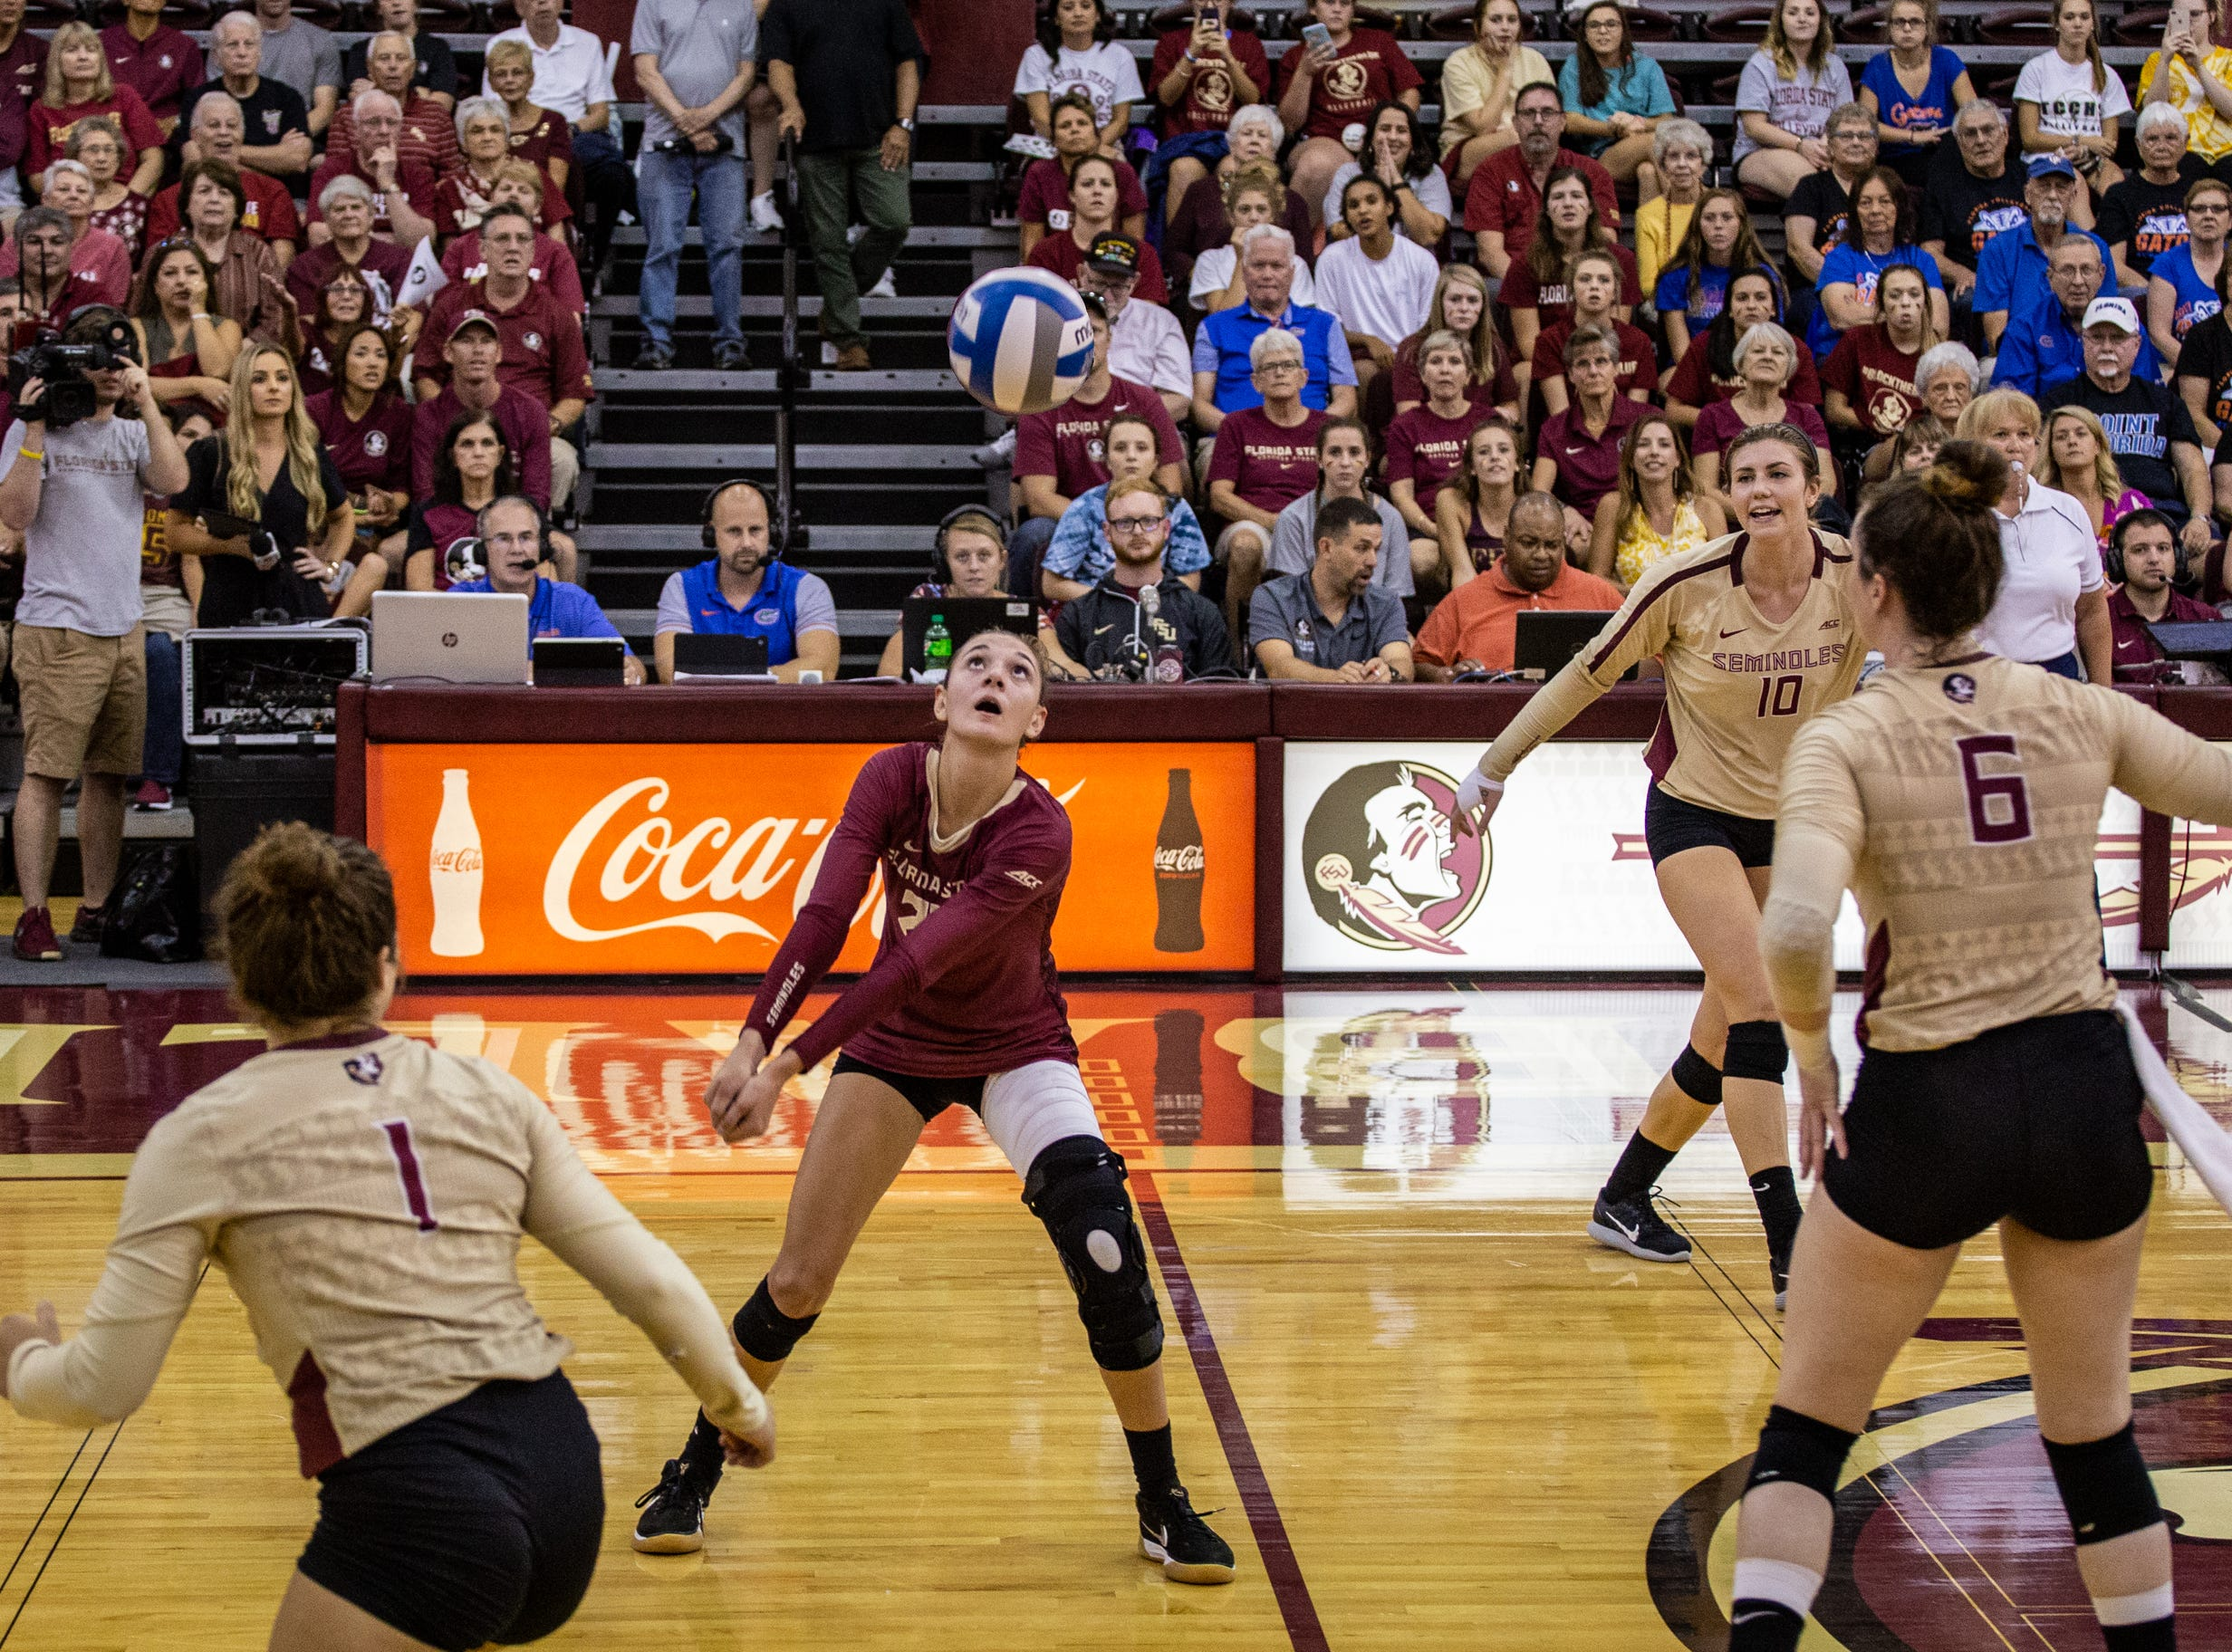 FSU libero Kelsey Wicinski (20) bumps a ball during the first set against Florida at Tully Gymnasium on Wednesday.